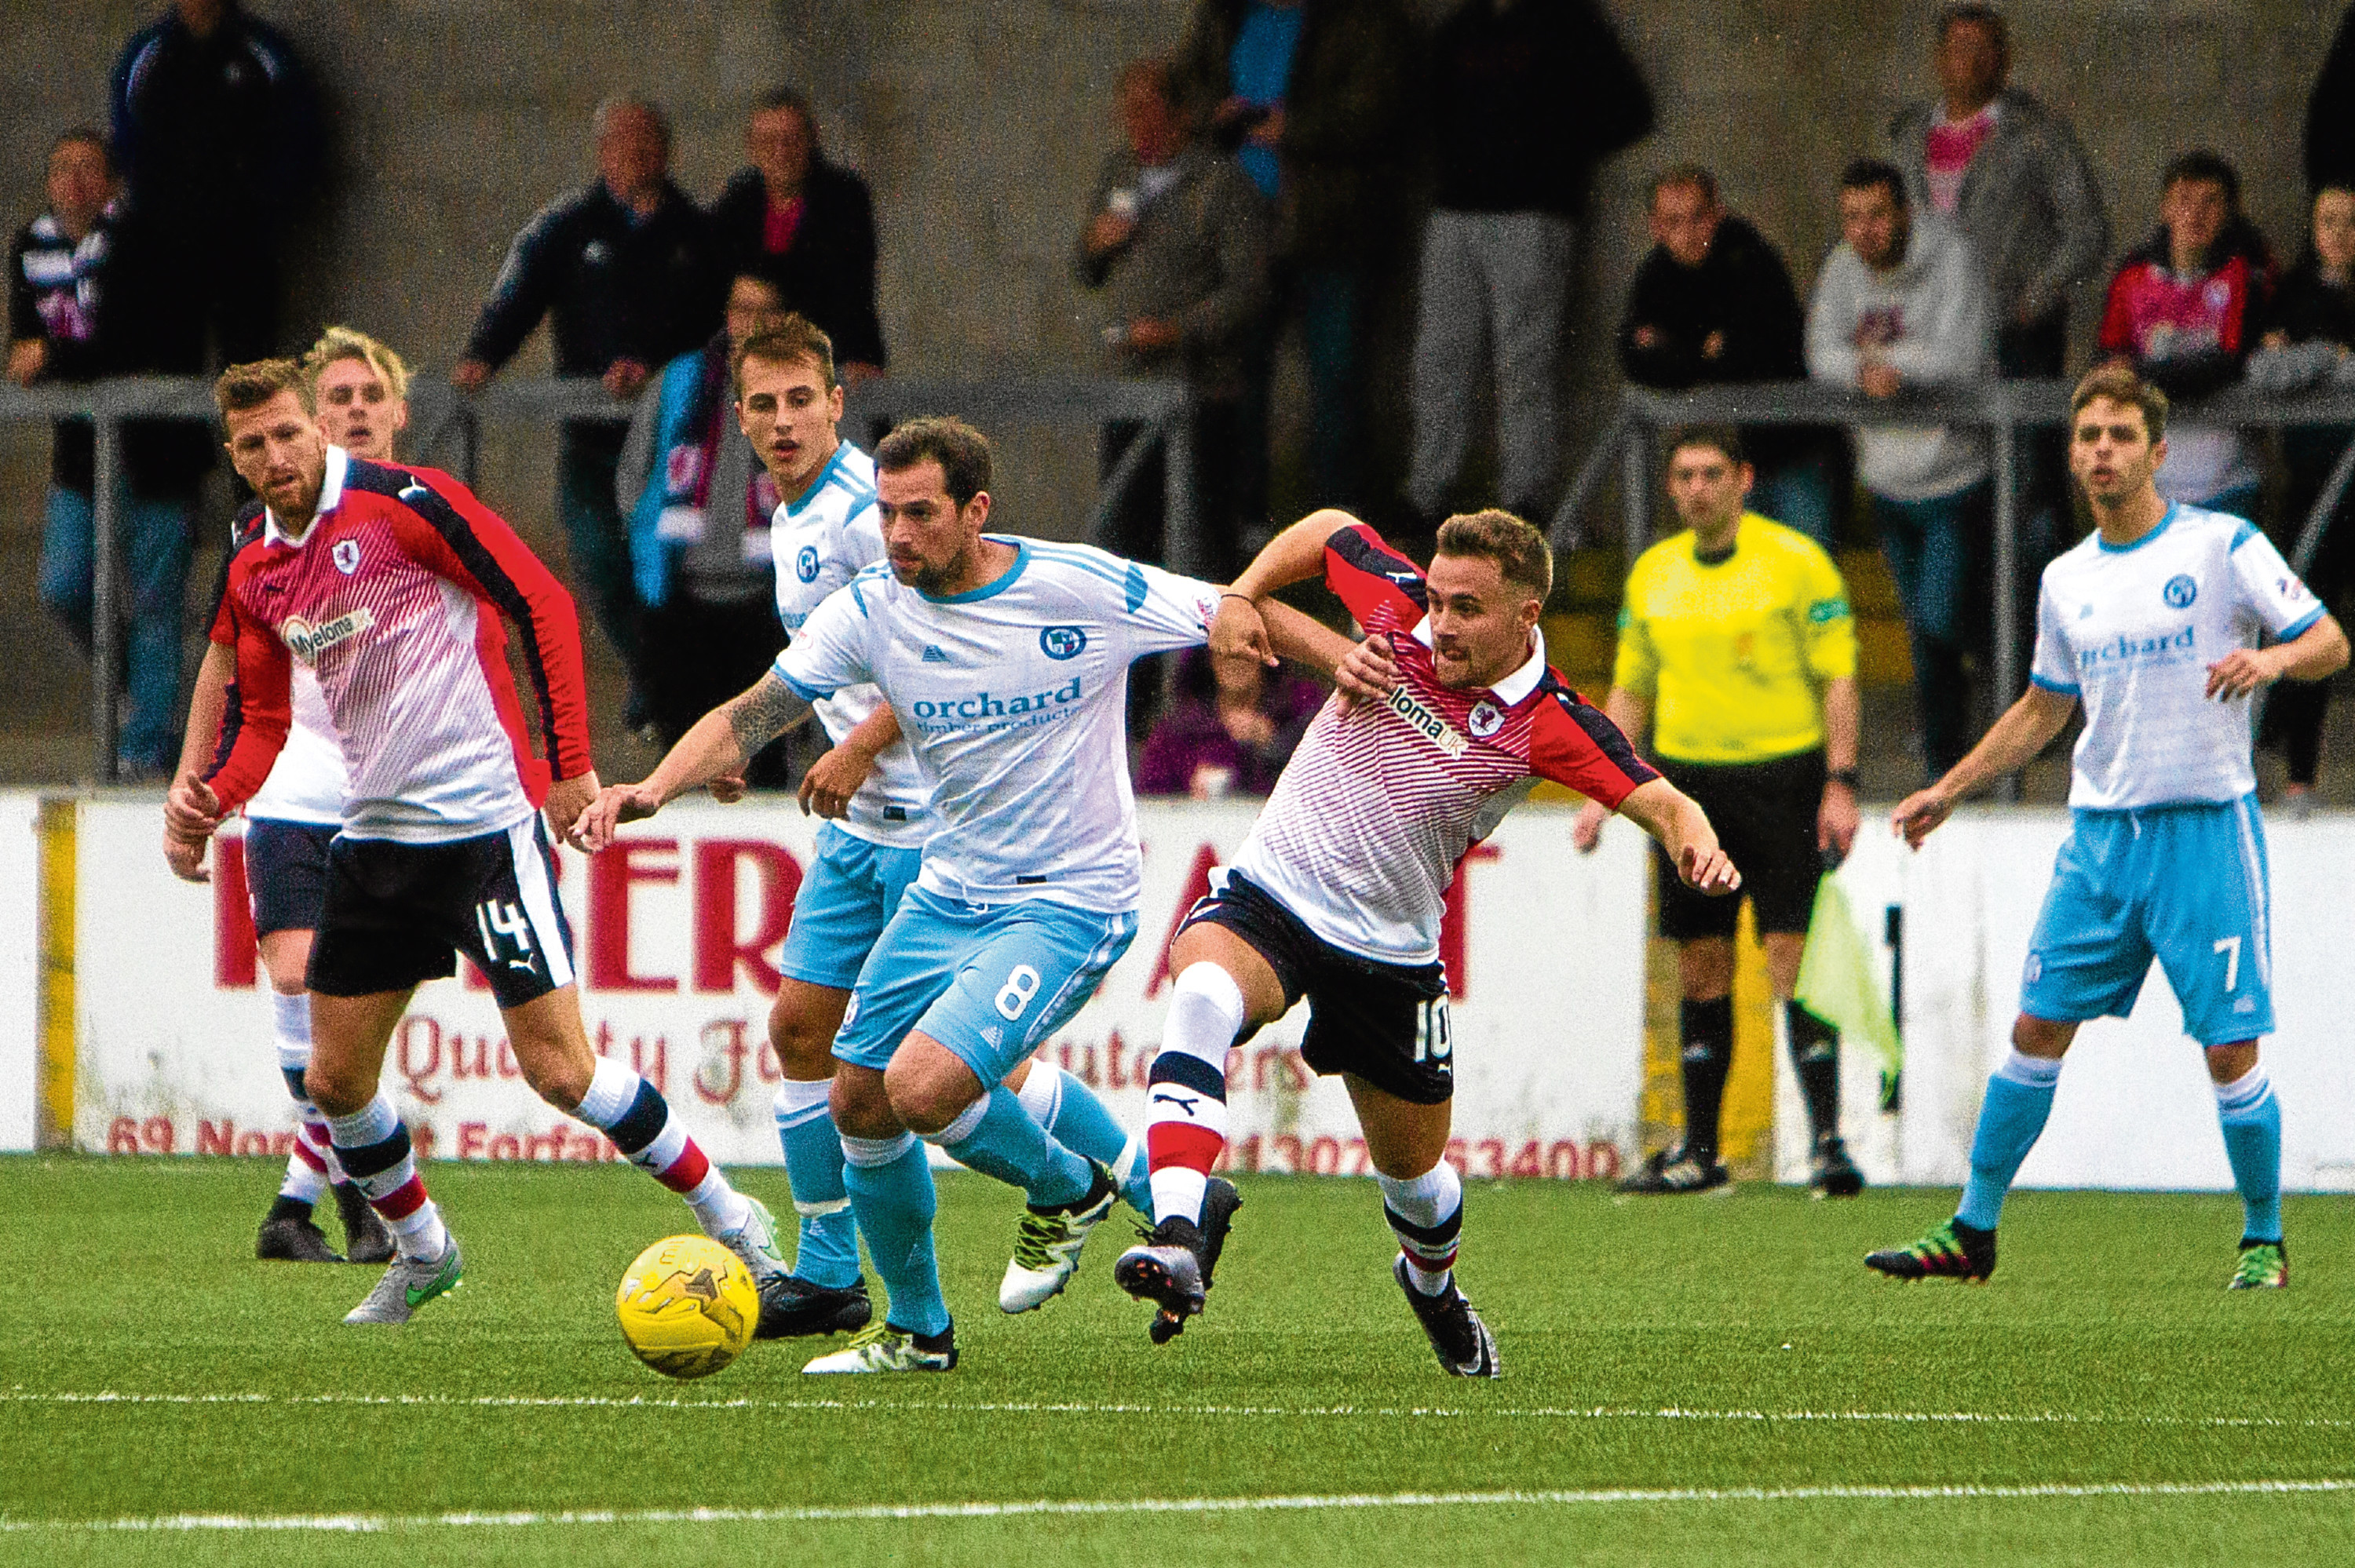 Action from a previous Forfar v Raith game at Station Park.